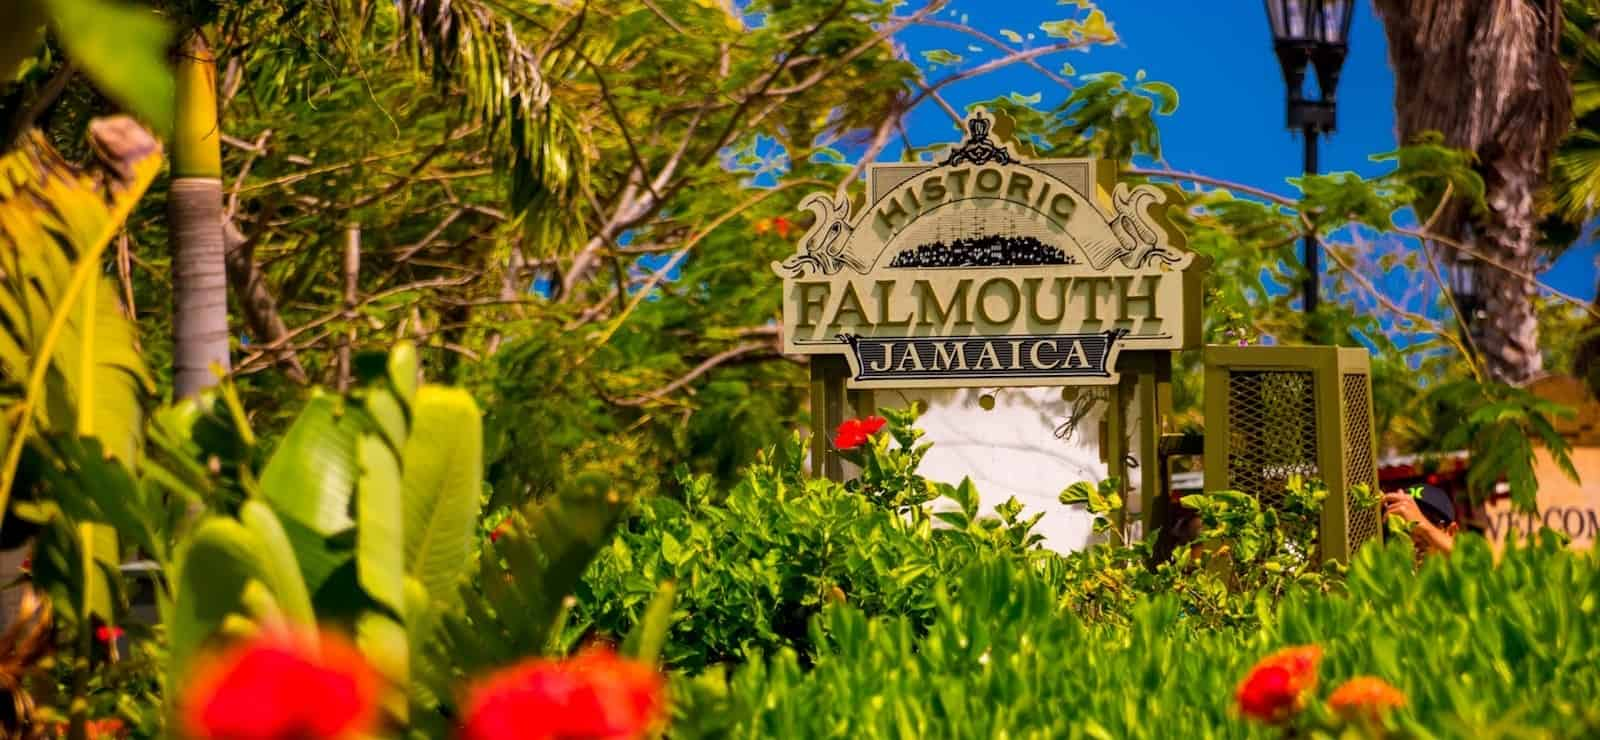 Word To The Wise Read These Five Tips Before You Visit Falmouth Jamaica